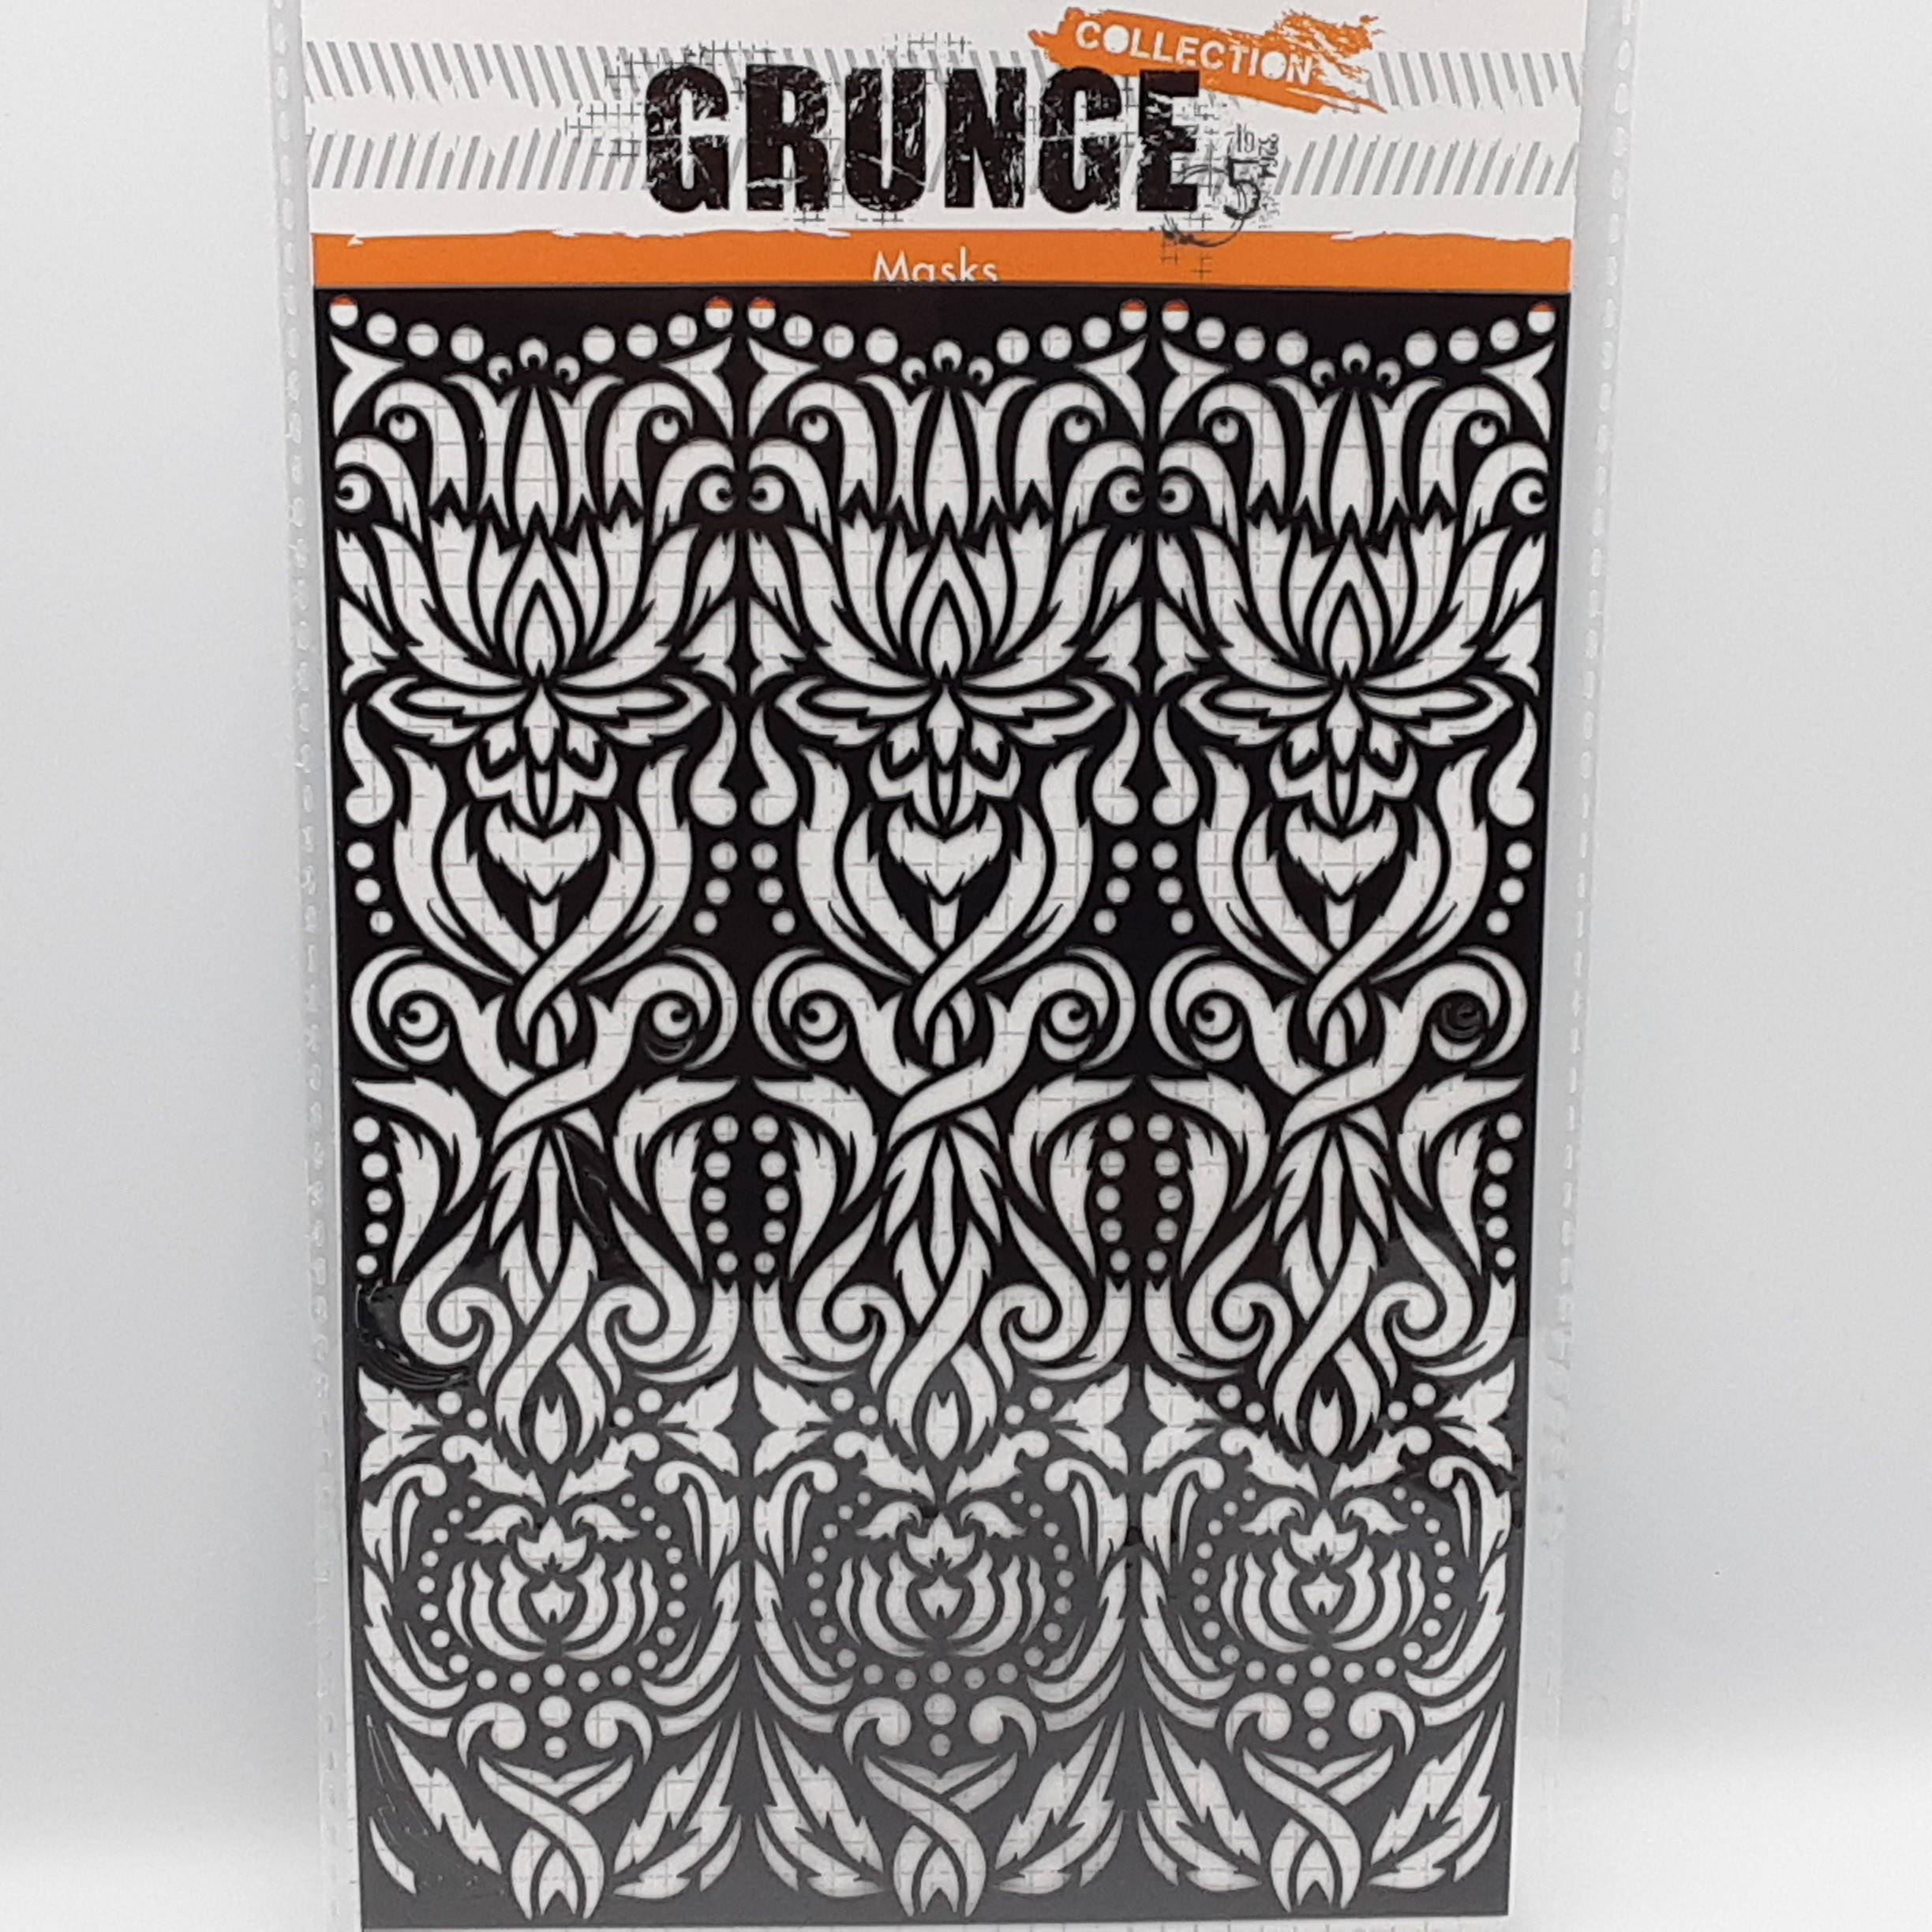 Grunge collection mask nr 53